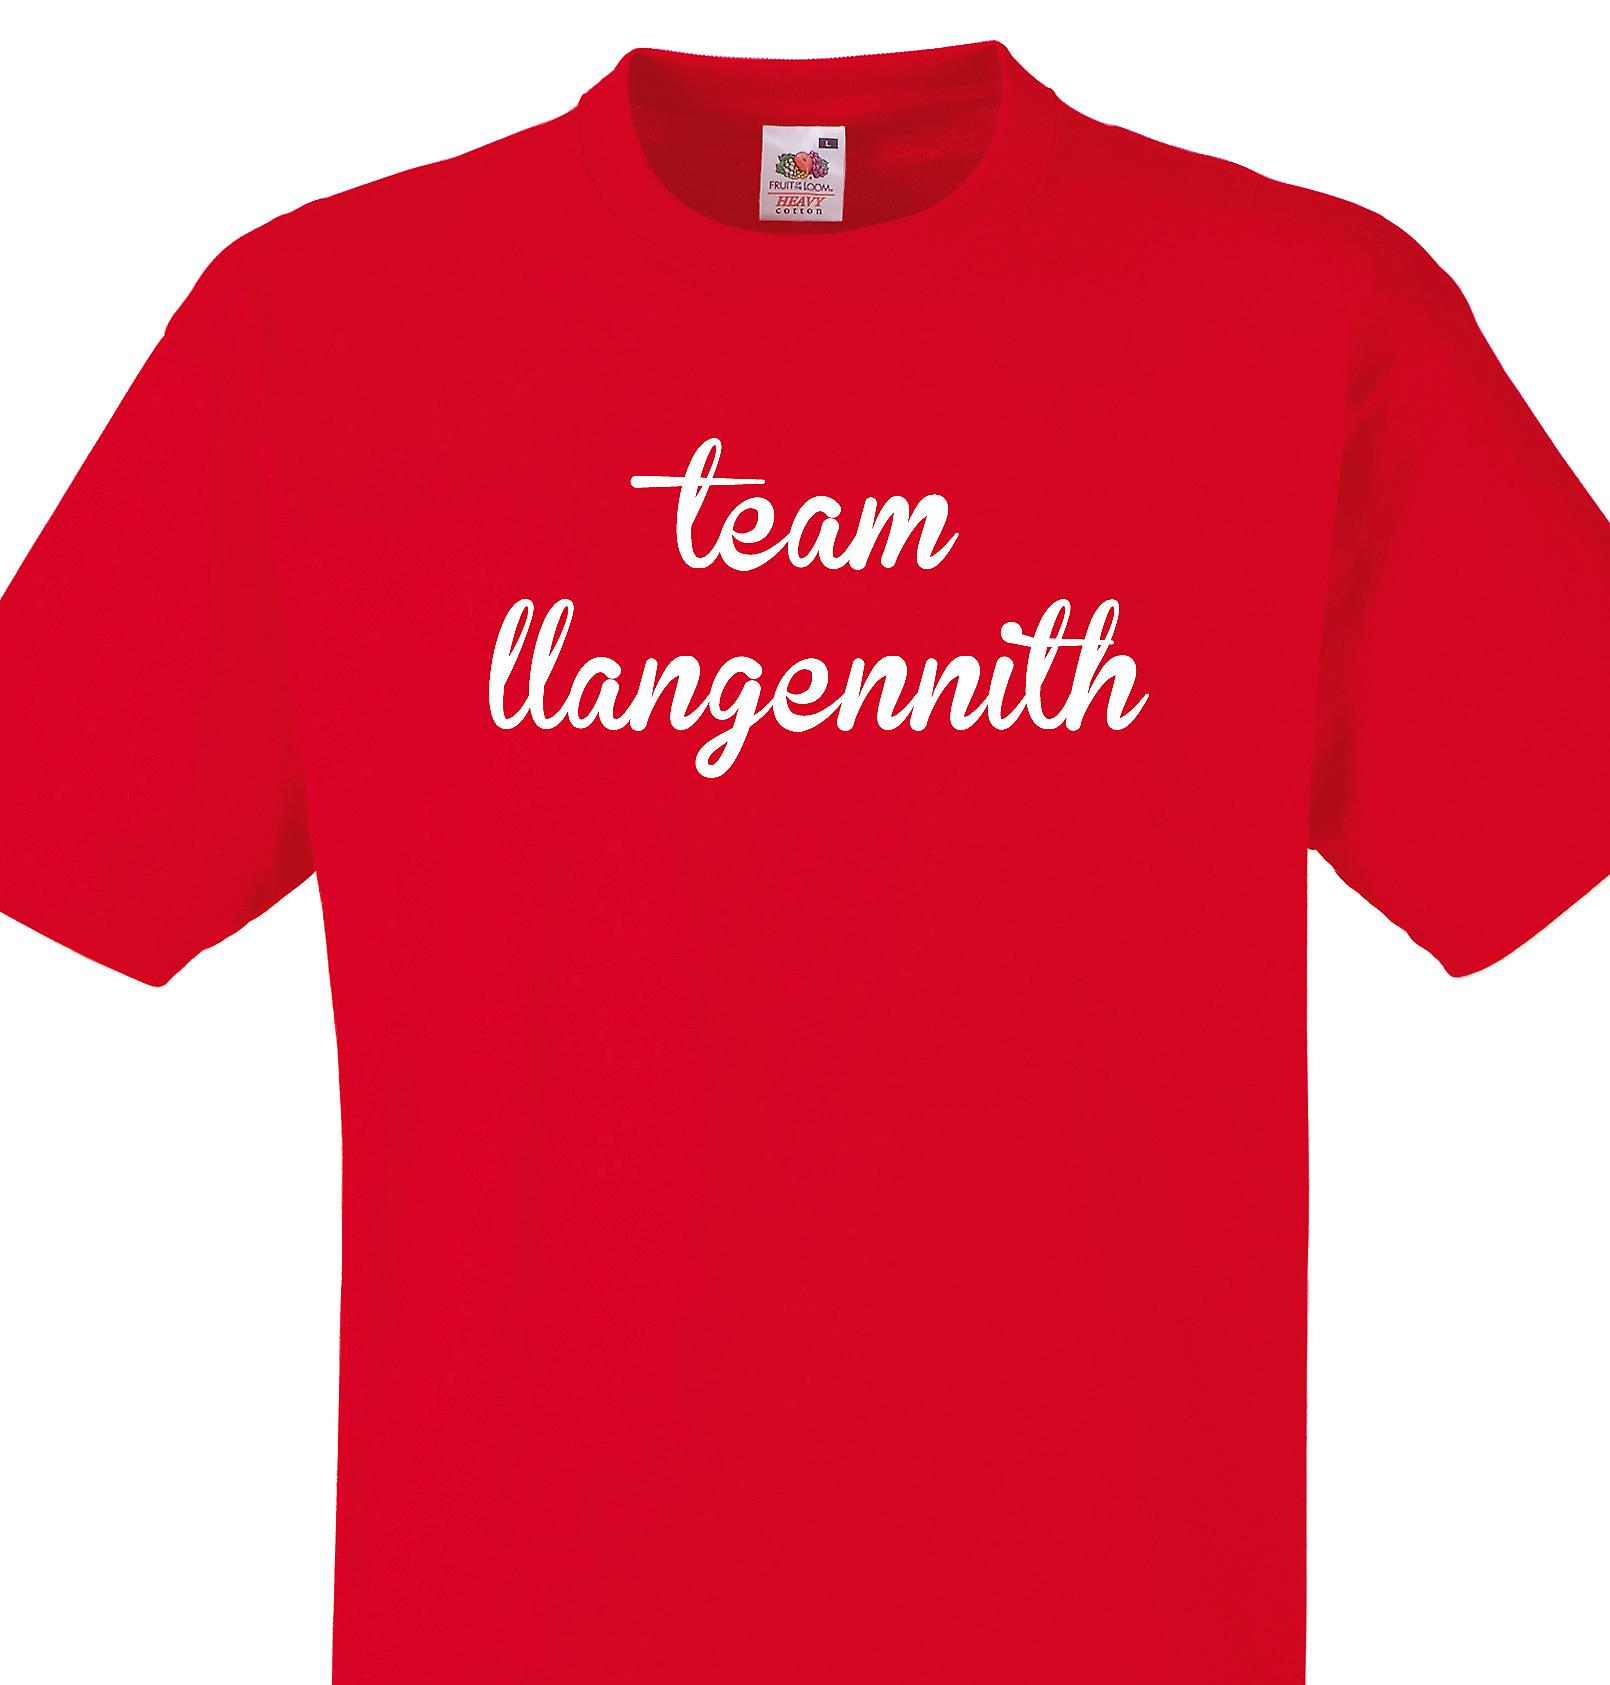 Team Llangennith Red T shirt